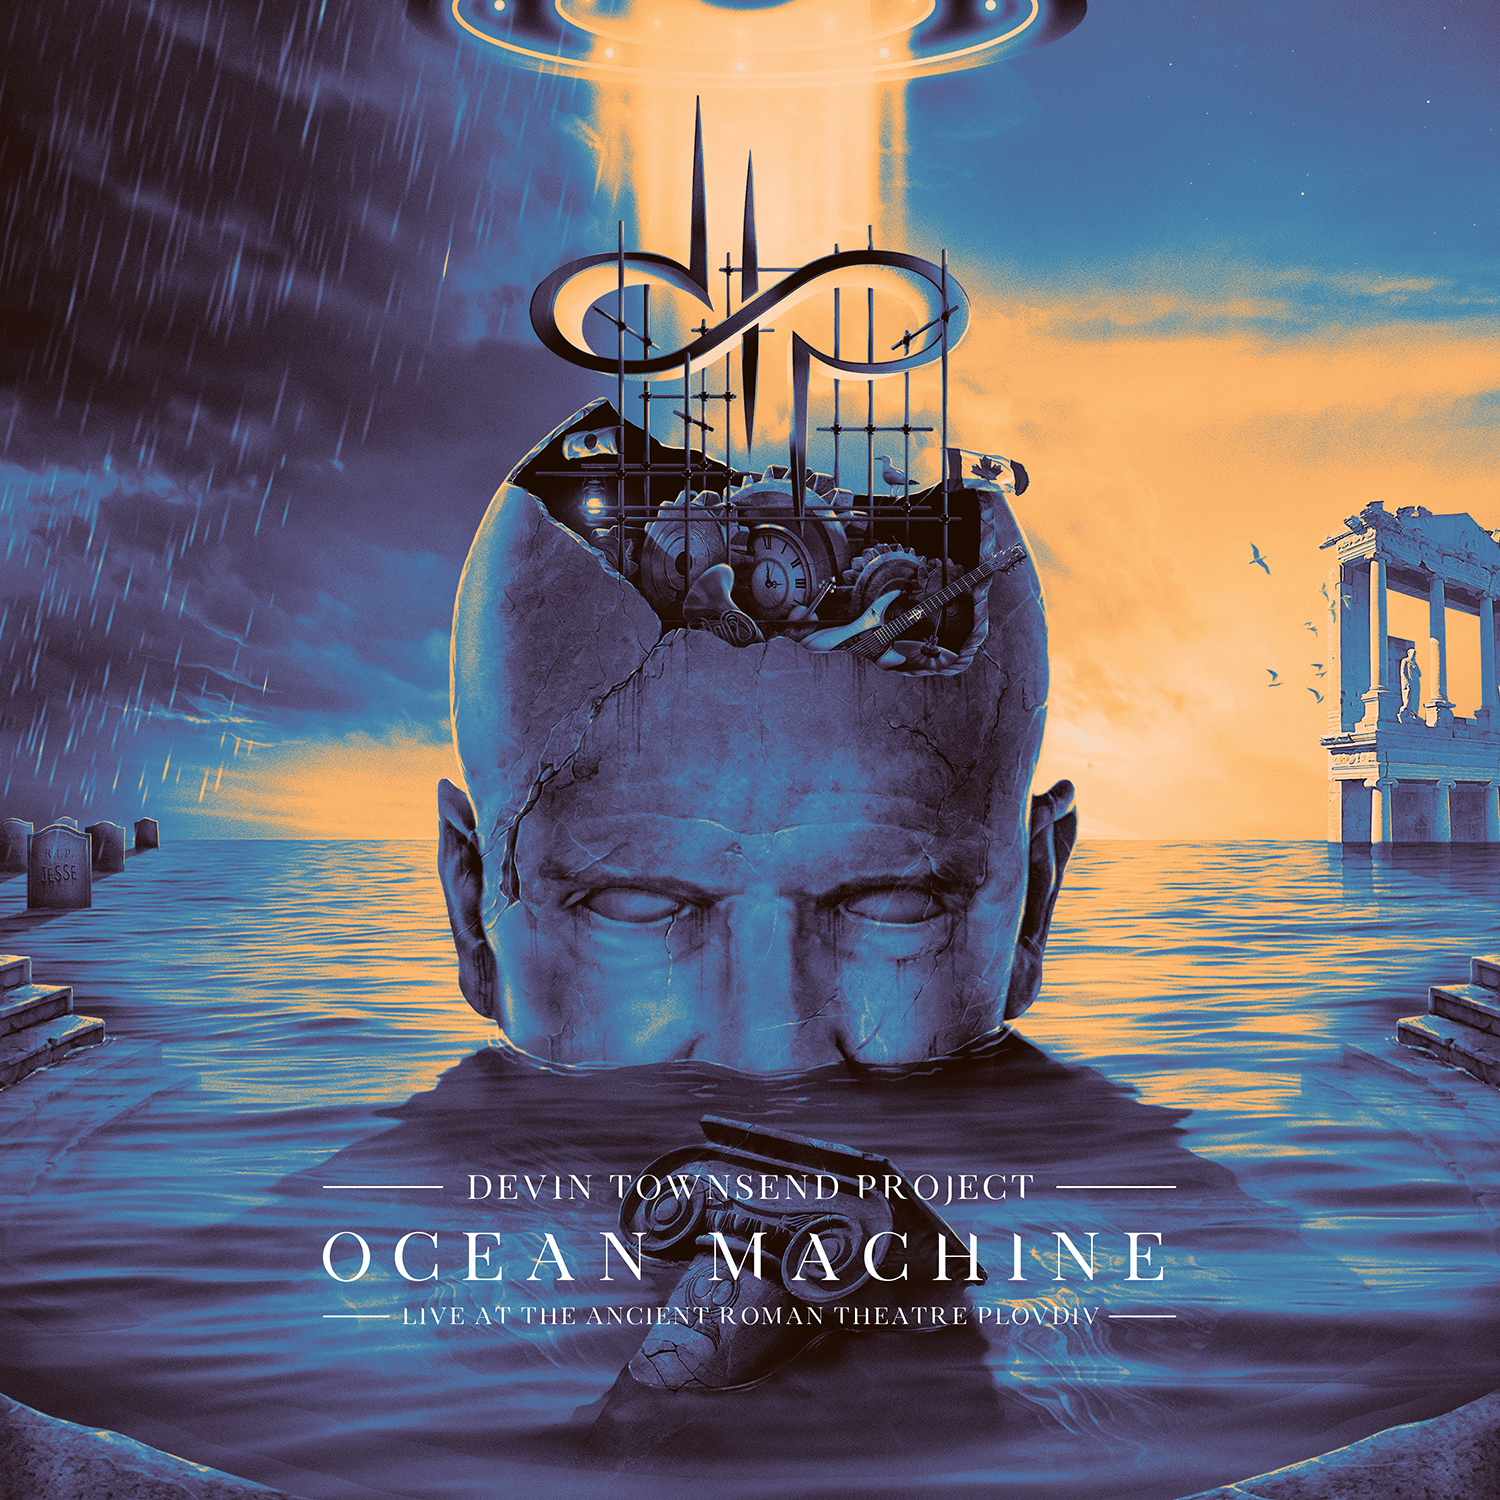 devin_townsend_project_ocean_machine_live_at_the_ancient_theater.jpg